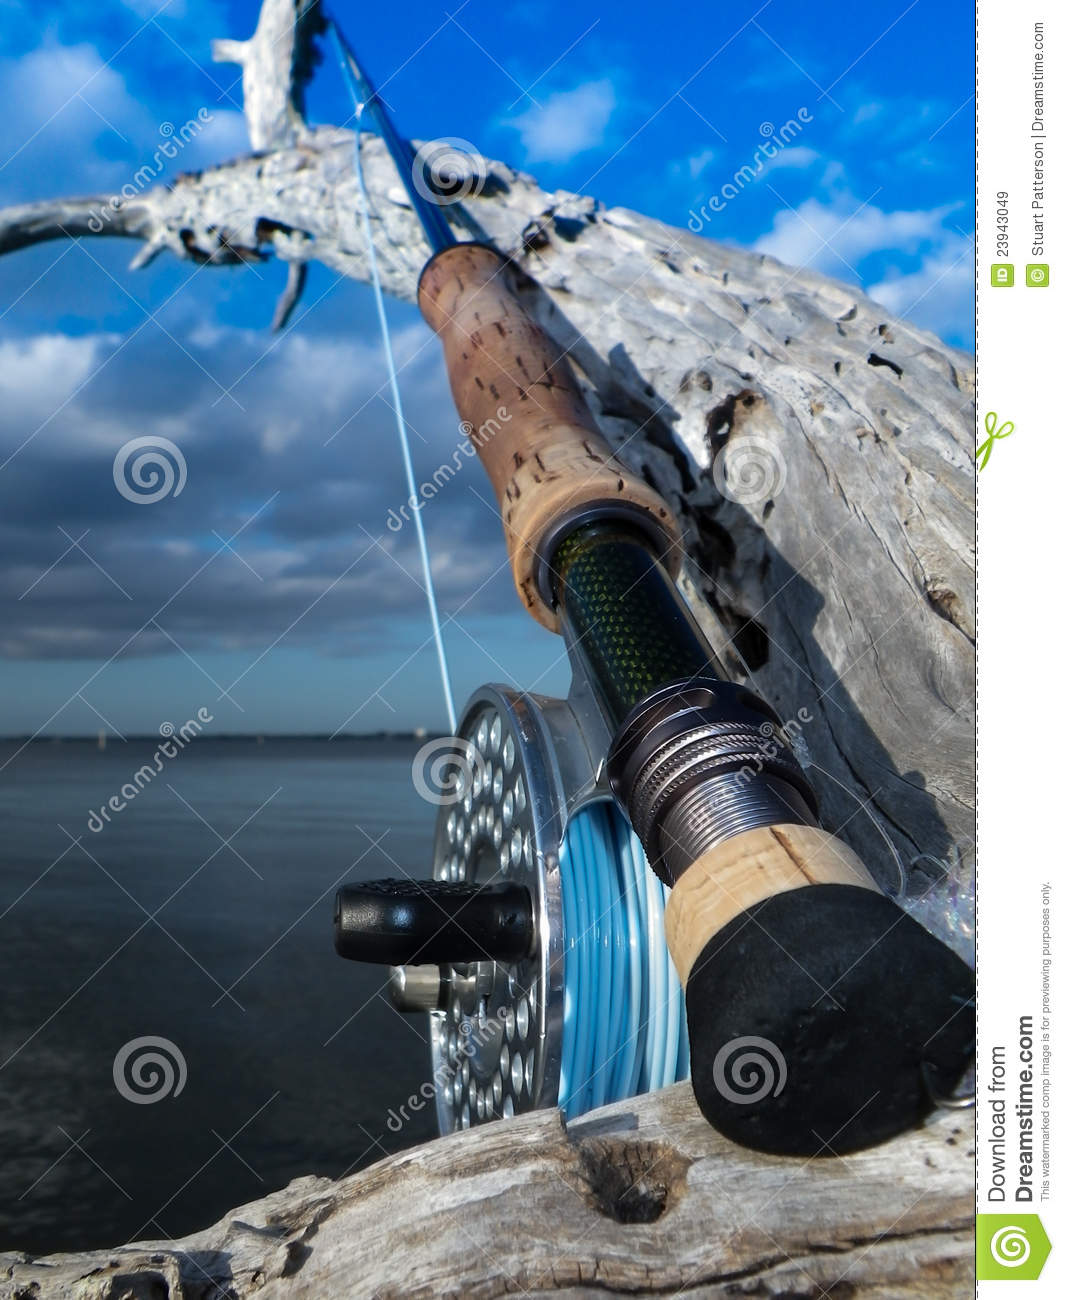 Saltwater fly rod and reel stock image image of fish for Saltwater fly fishing reels